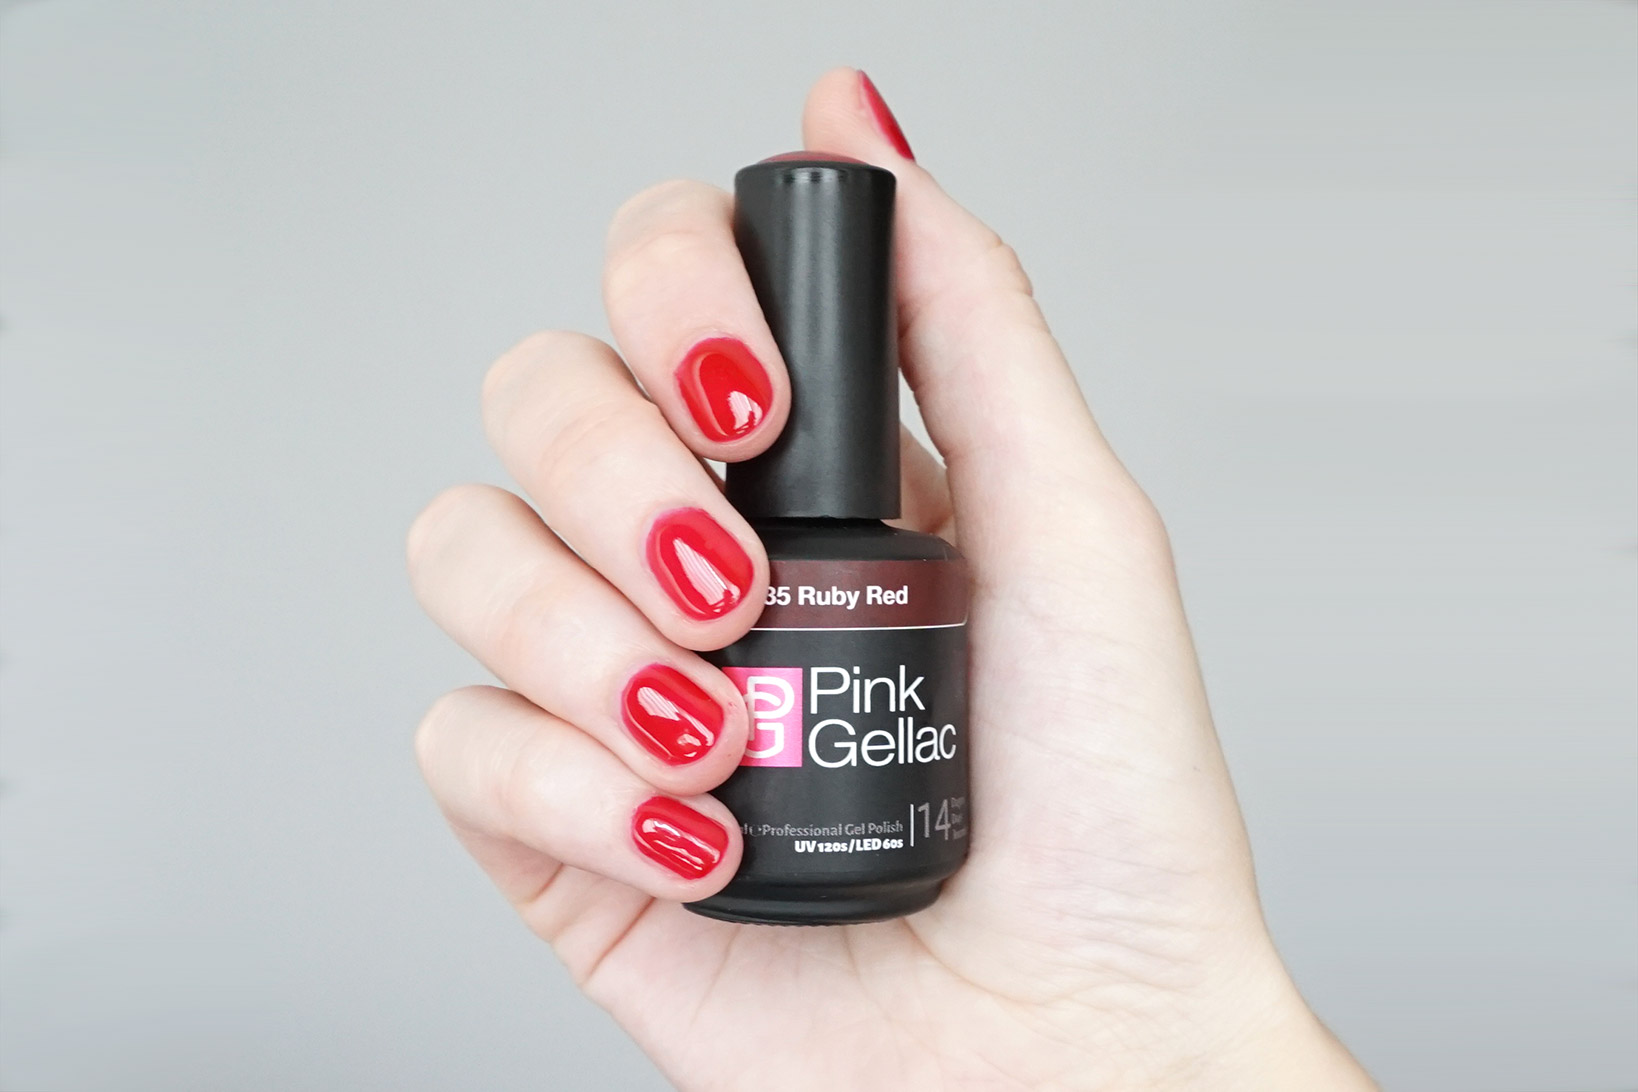 Pink-Gellac-review-235-Ruby-Red-2